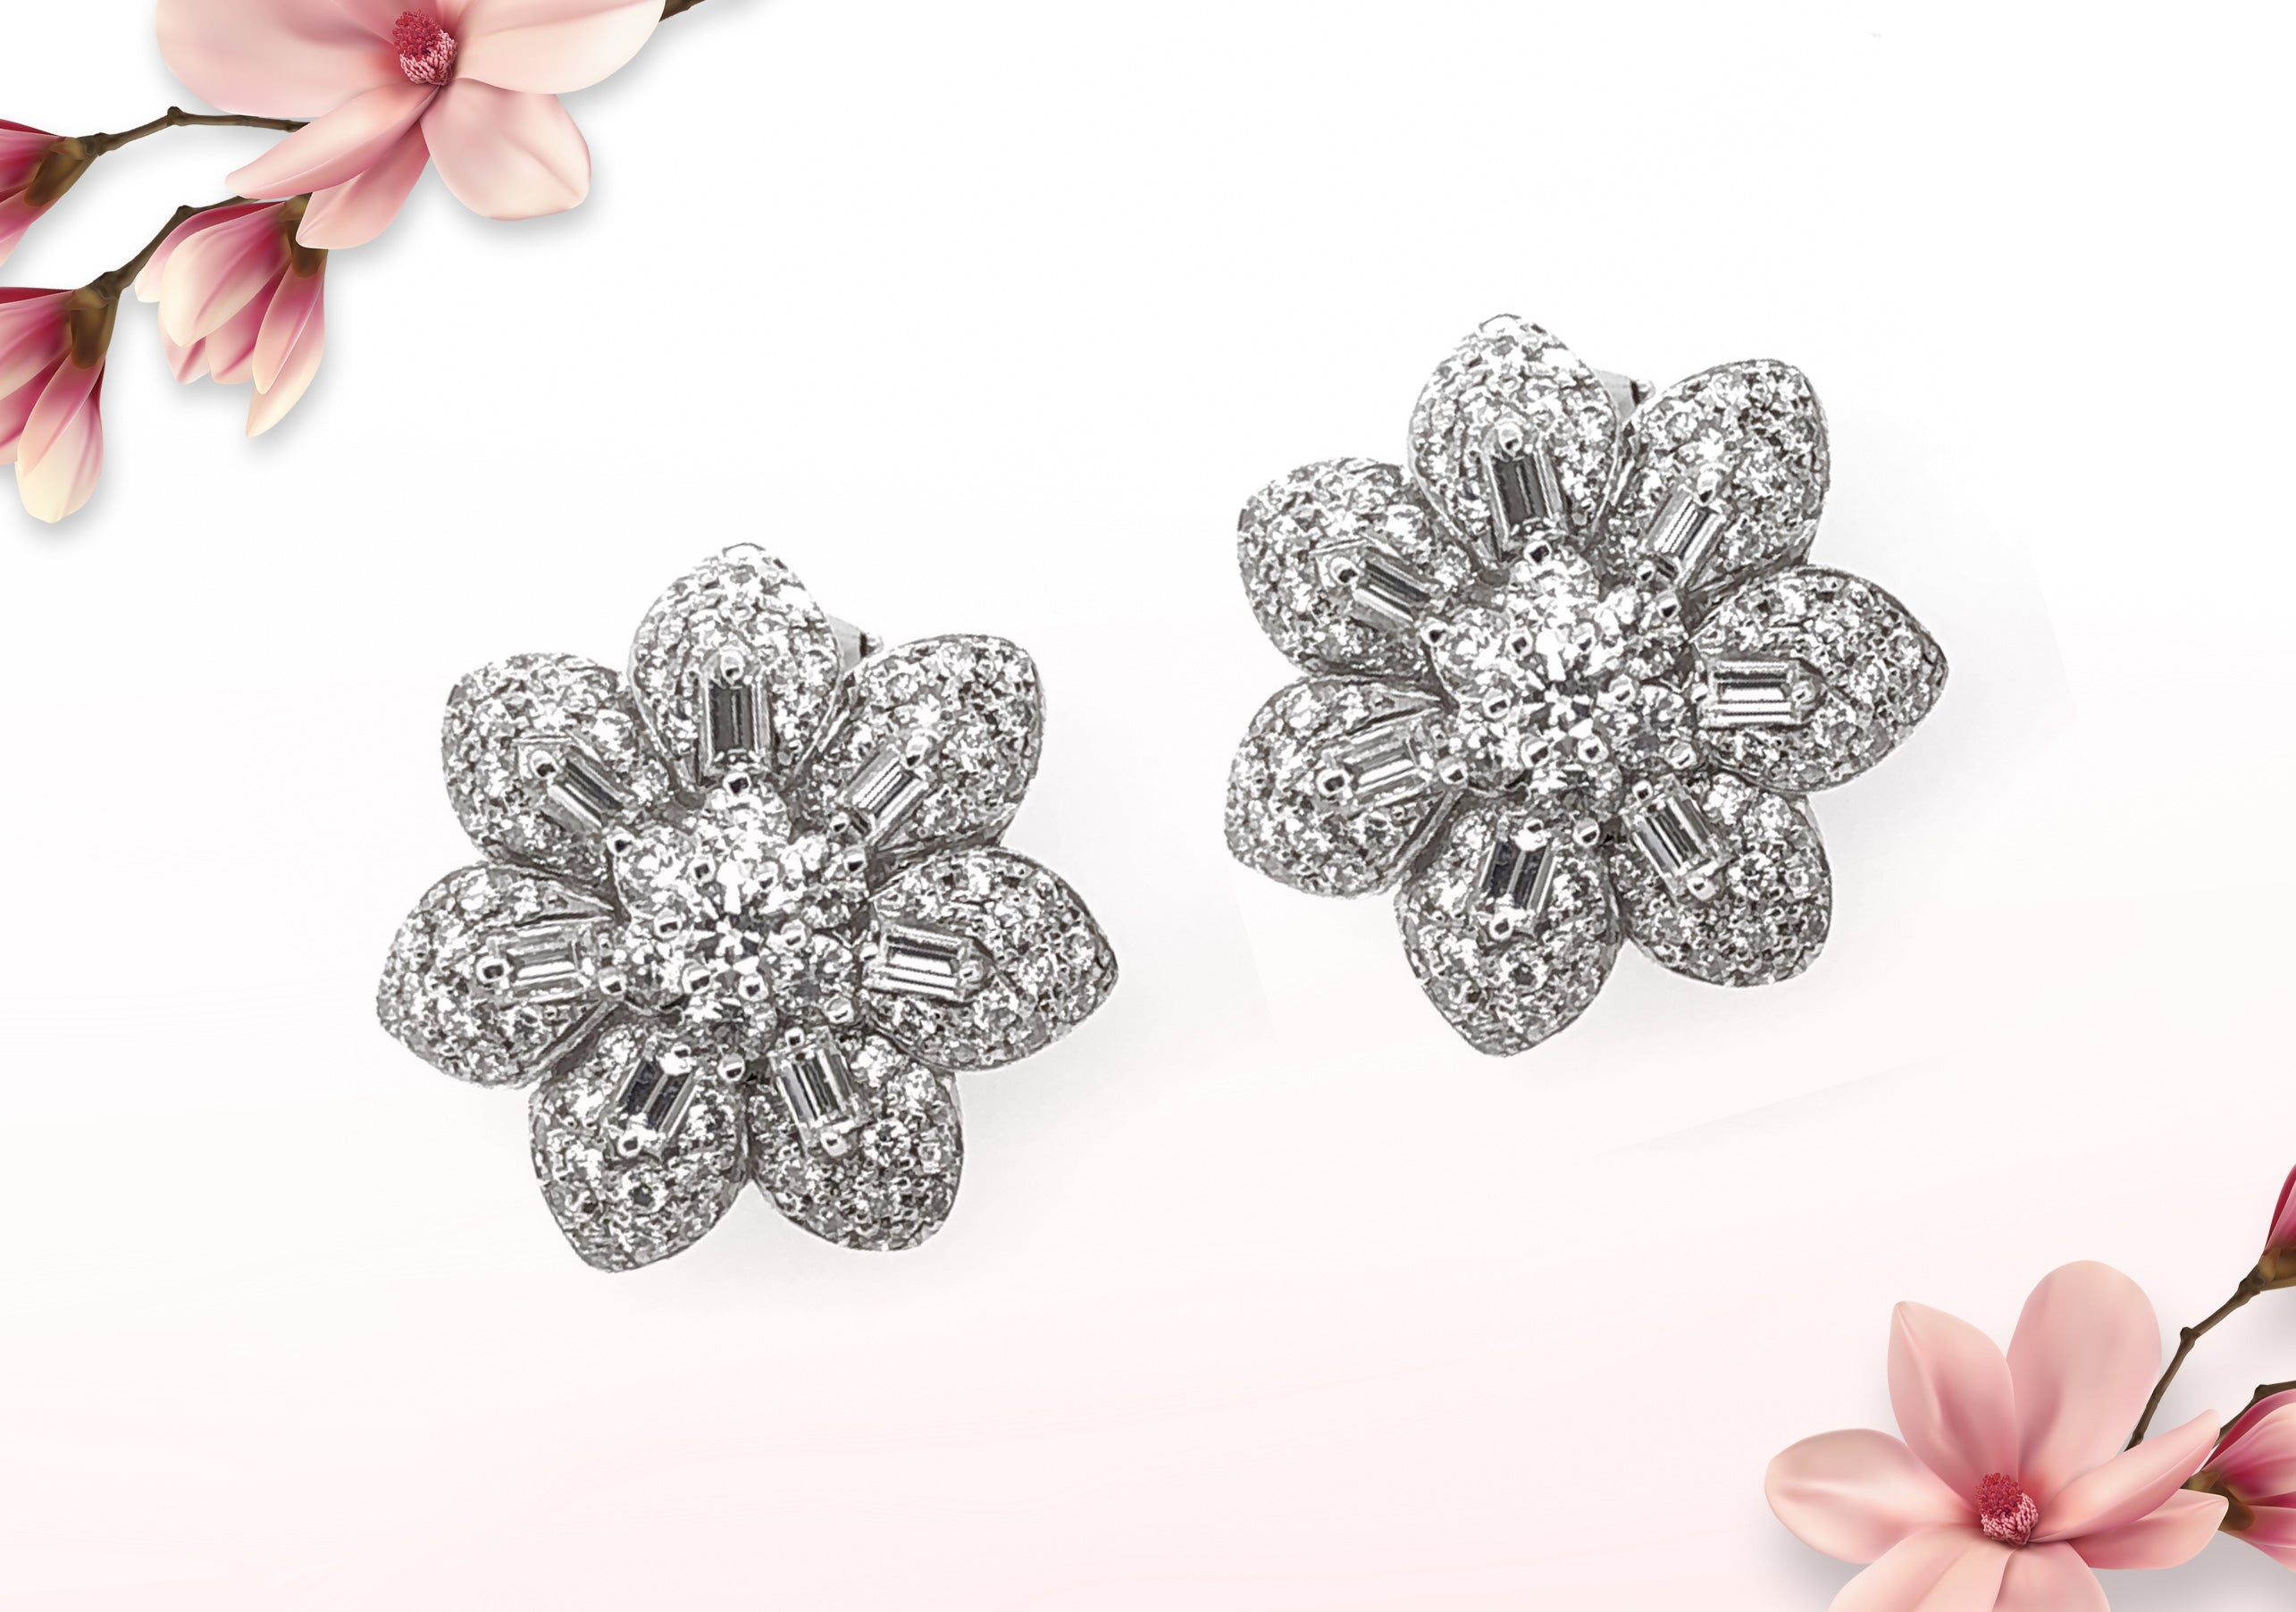 Flower earrings - Max Jewelry Inc.